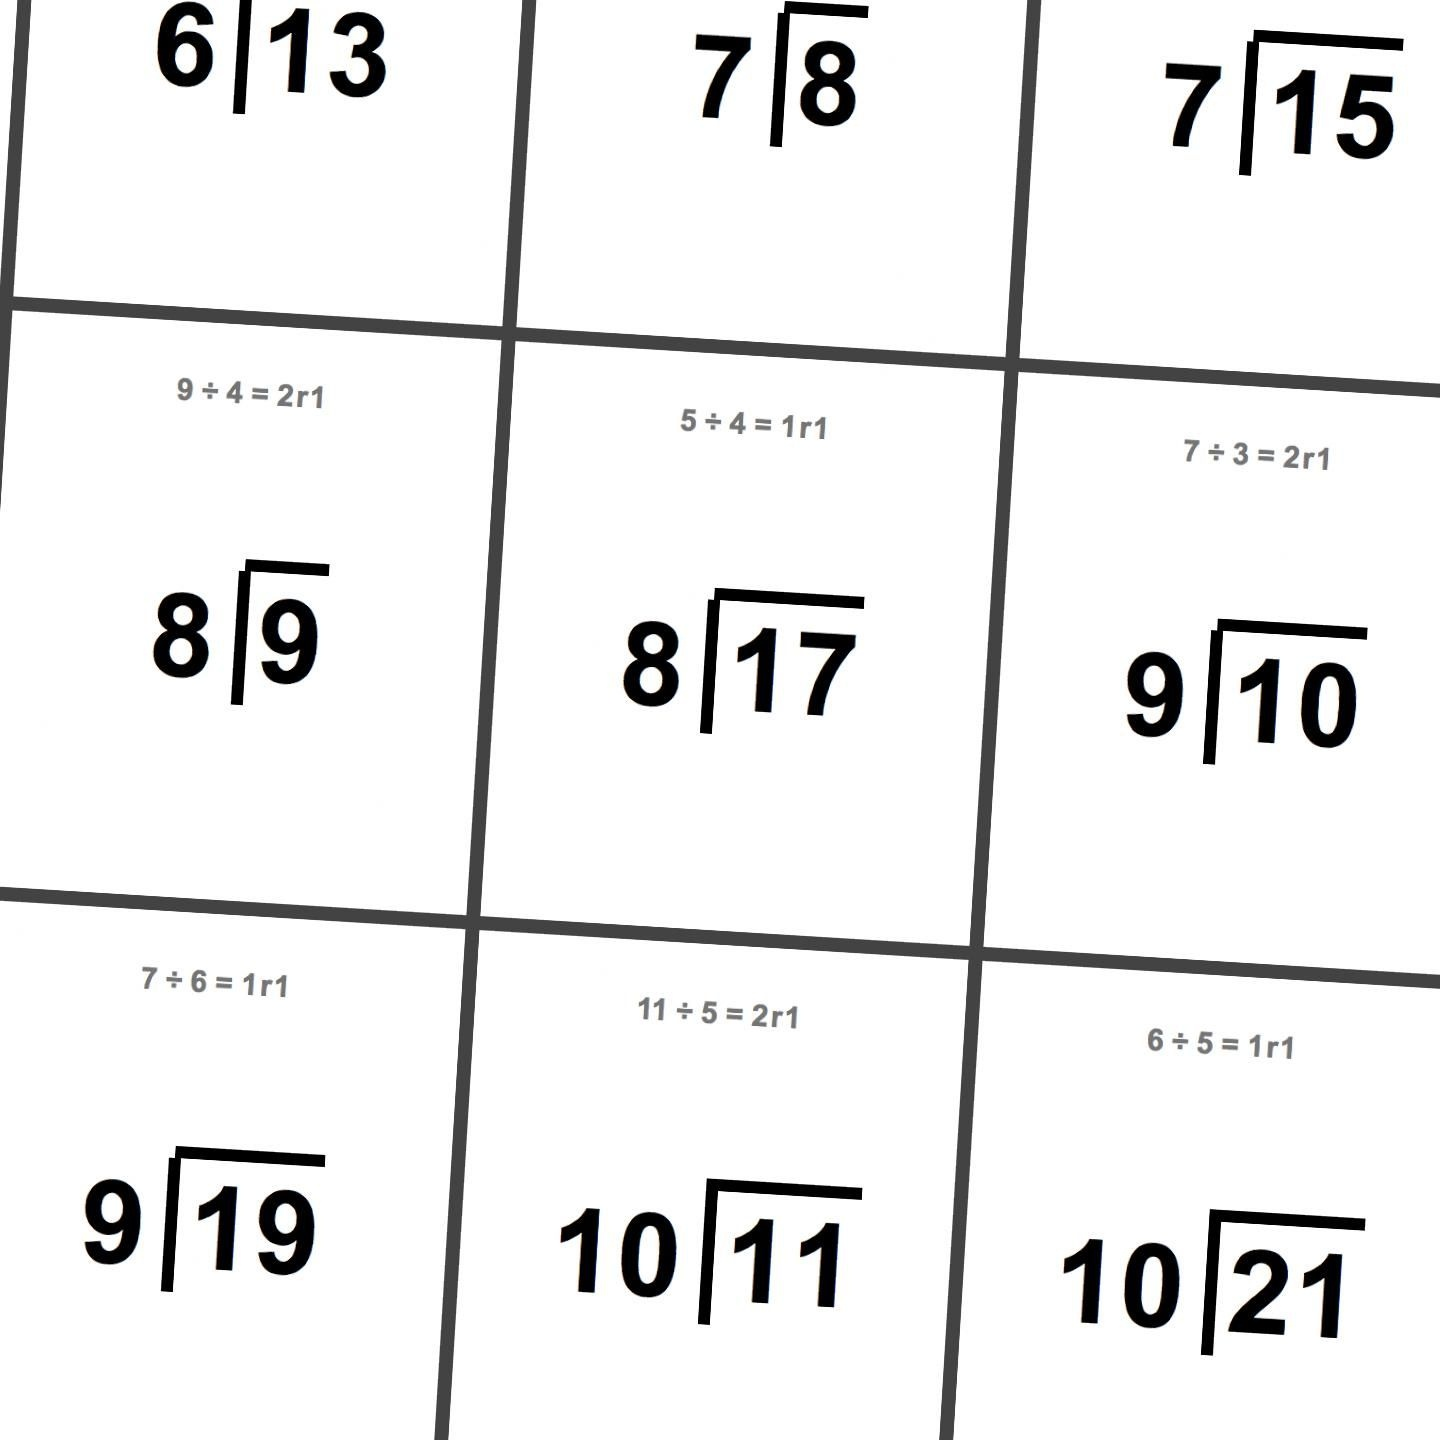 Printable Flash Cards: Division With Remainders | Math Worksheets - Free Printable Division Flash Cards